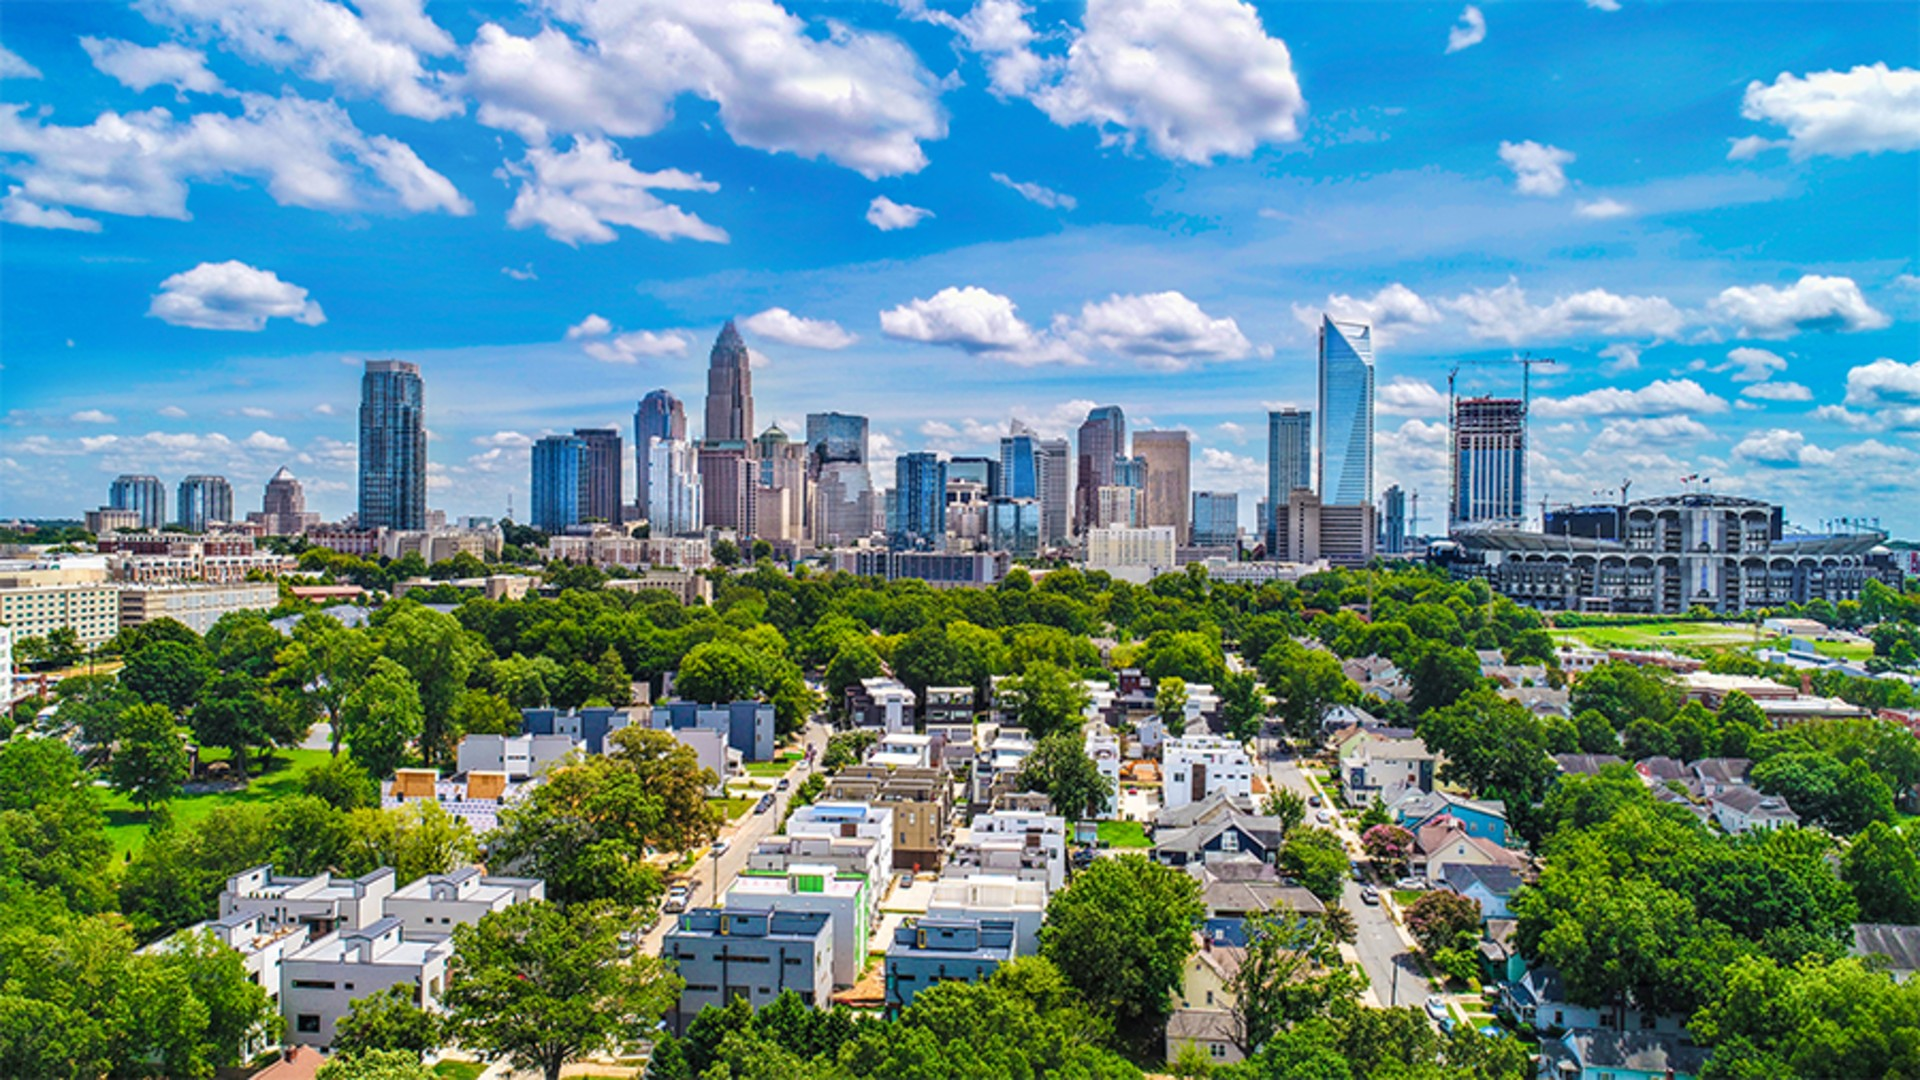 The skyline of Charlotte, NC, as a consortium of the public, private and non-profit sectors announce the launch of a comprehensive community-wide effort to create a strategic plan around housing instability and homelessness in the community.